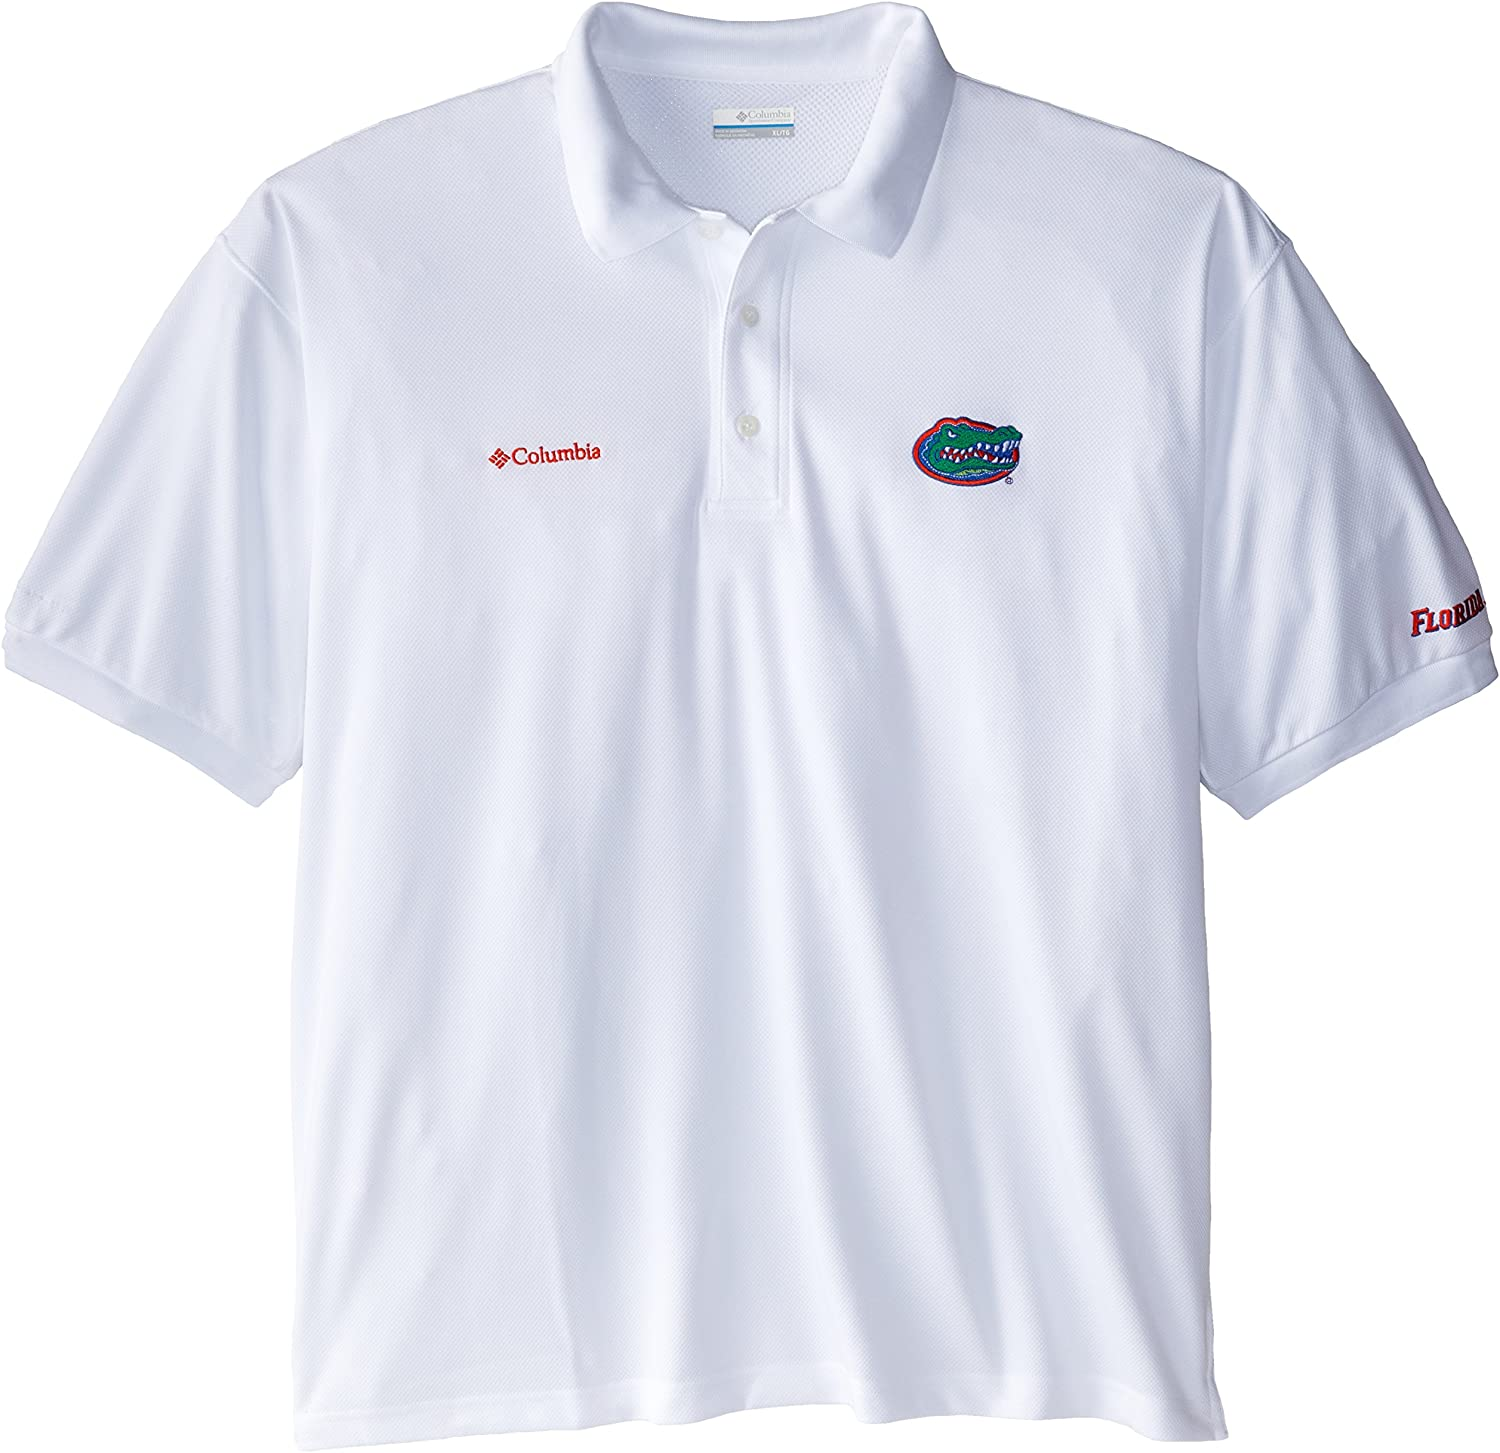 Columbia Los Angeles Mall NCAA Florida Gators Perfect Whi Polo - low-pricing Cast Performance